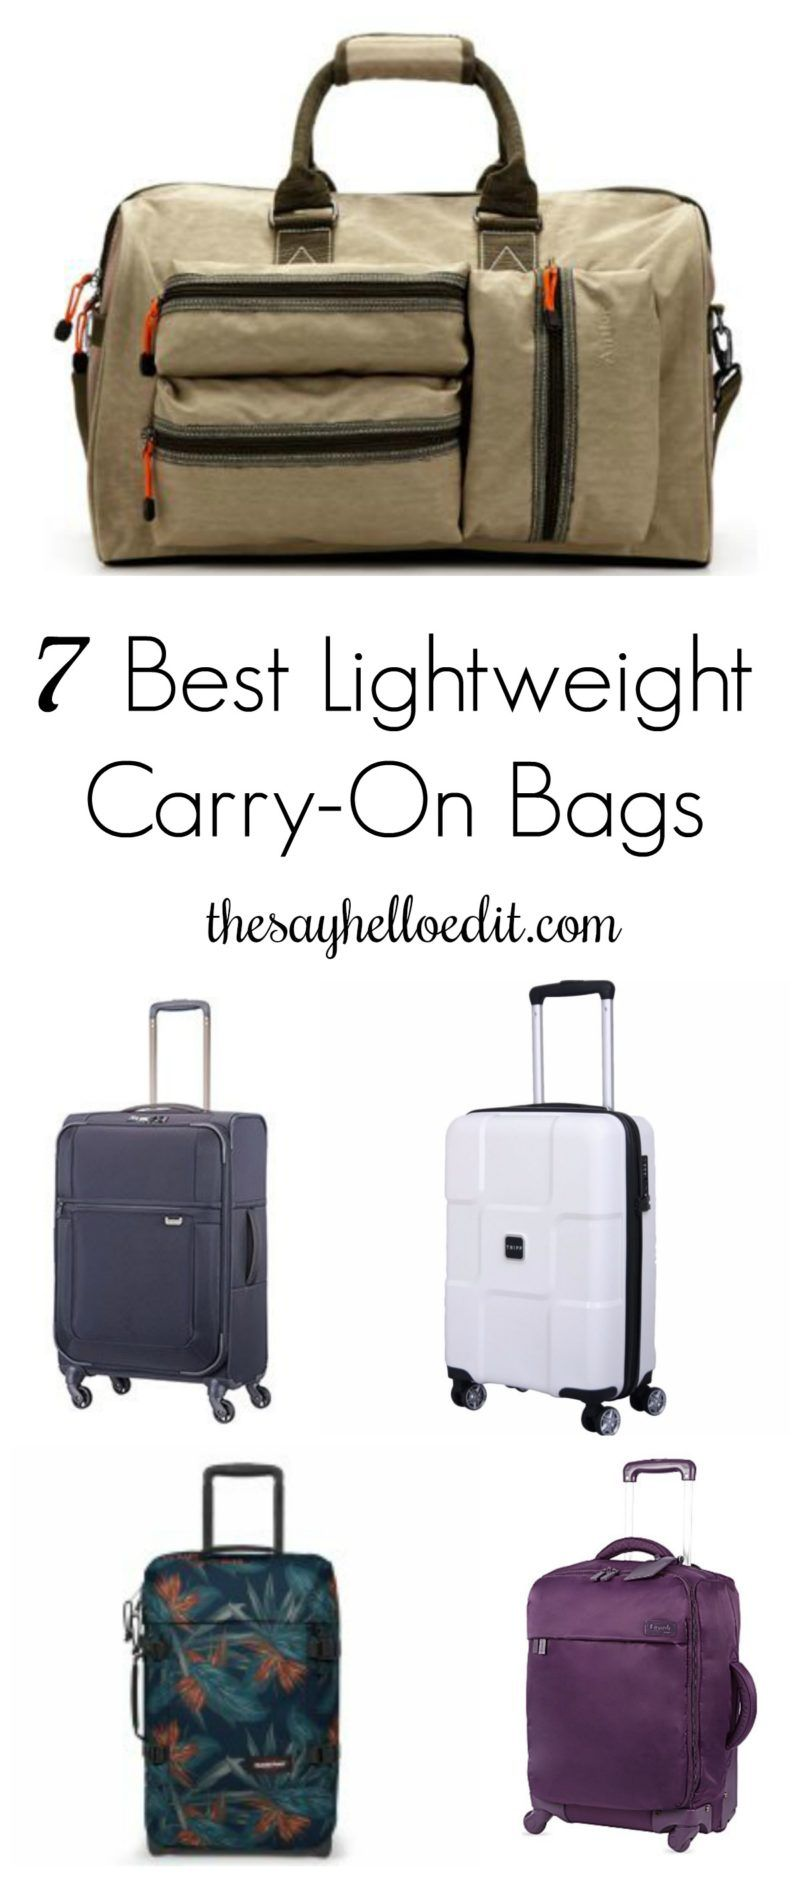 7 Best Lightweight Cabin Luggage Bags Travel Gear